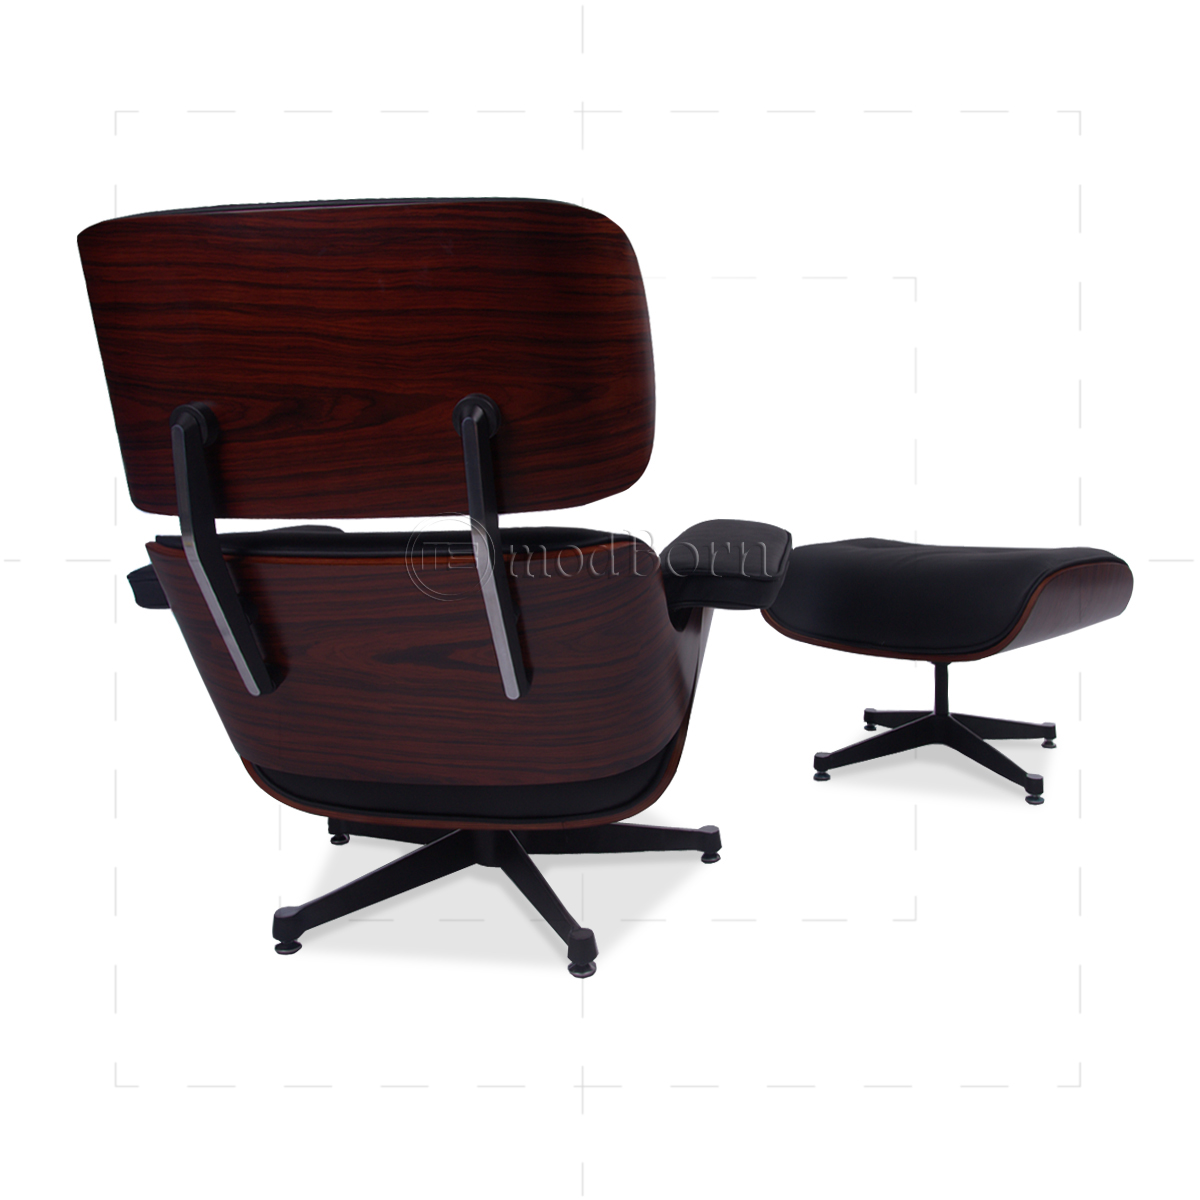 Amazing Eames Style Lounge Chair And Ottoman Black Leather Unemploymentrelief Wooden Chair Designs For Living Room Unemploymentrelieforg